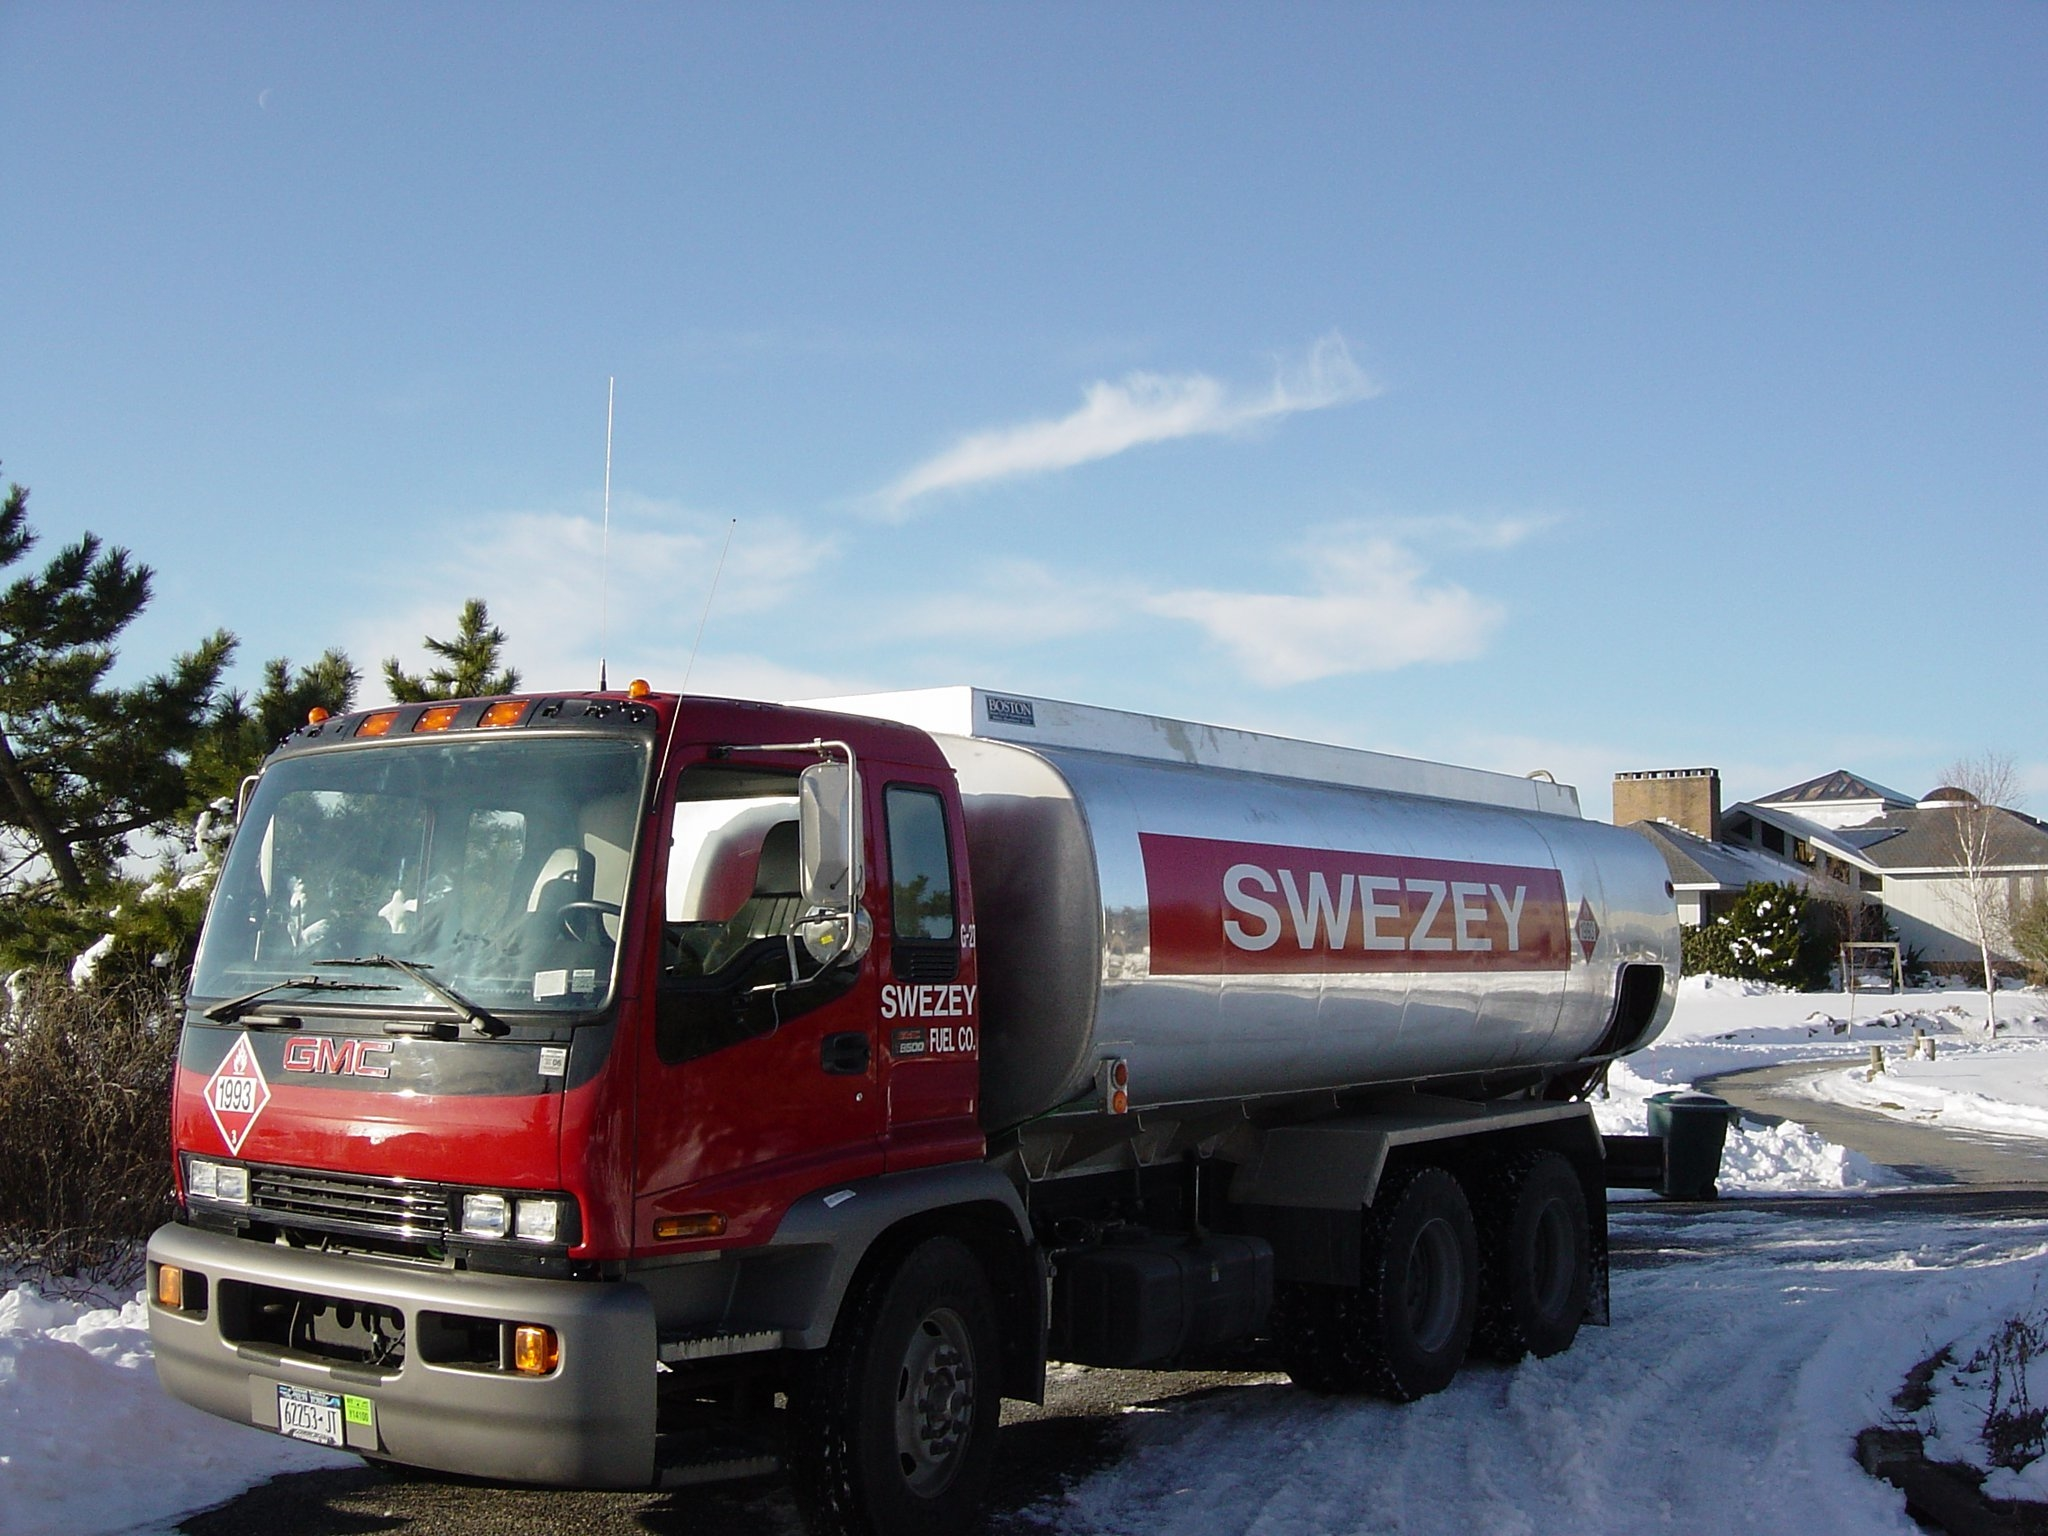 Swezey Fuel Co. Inc. image 3